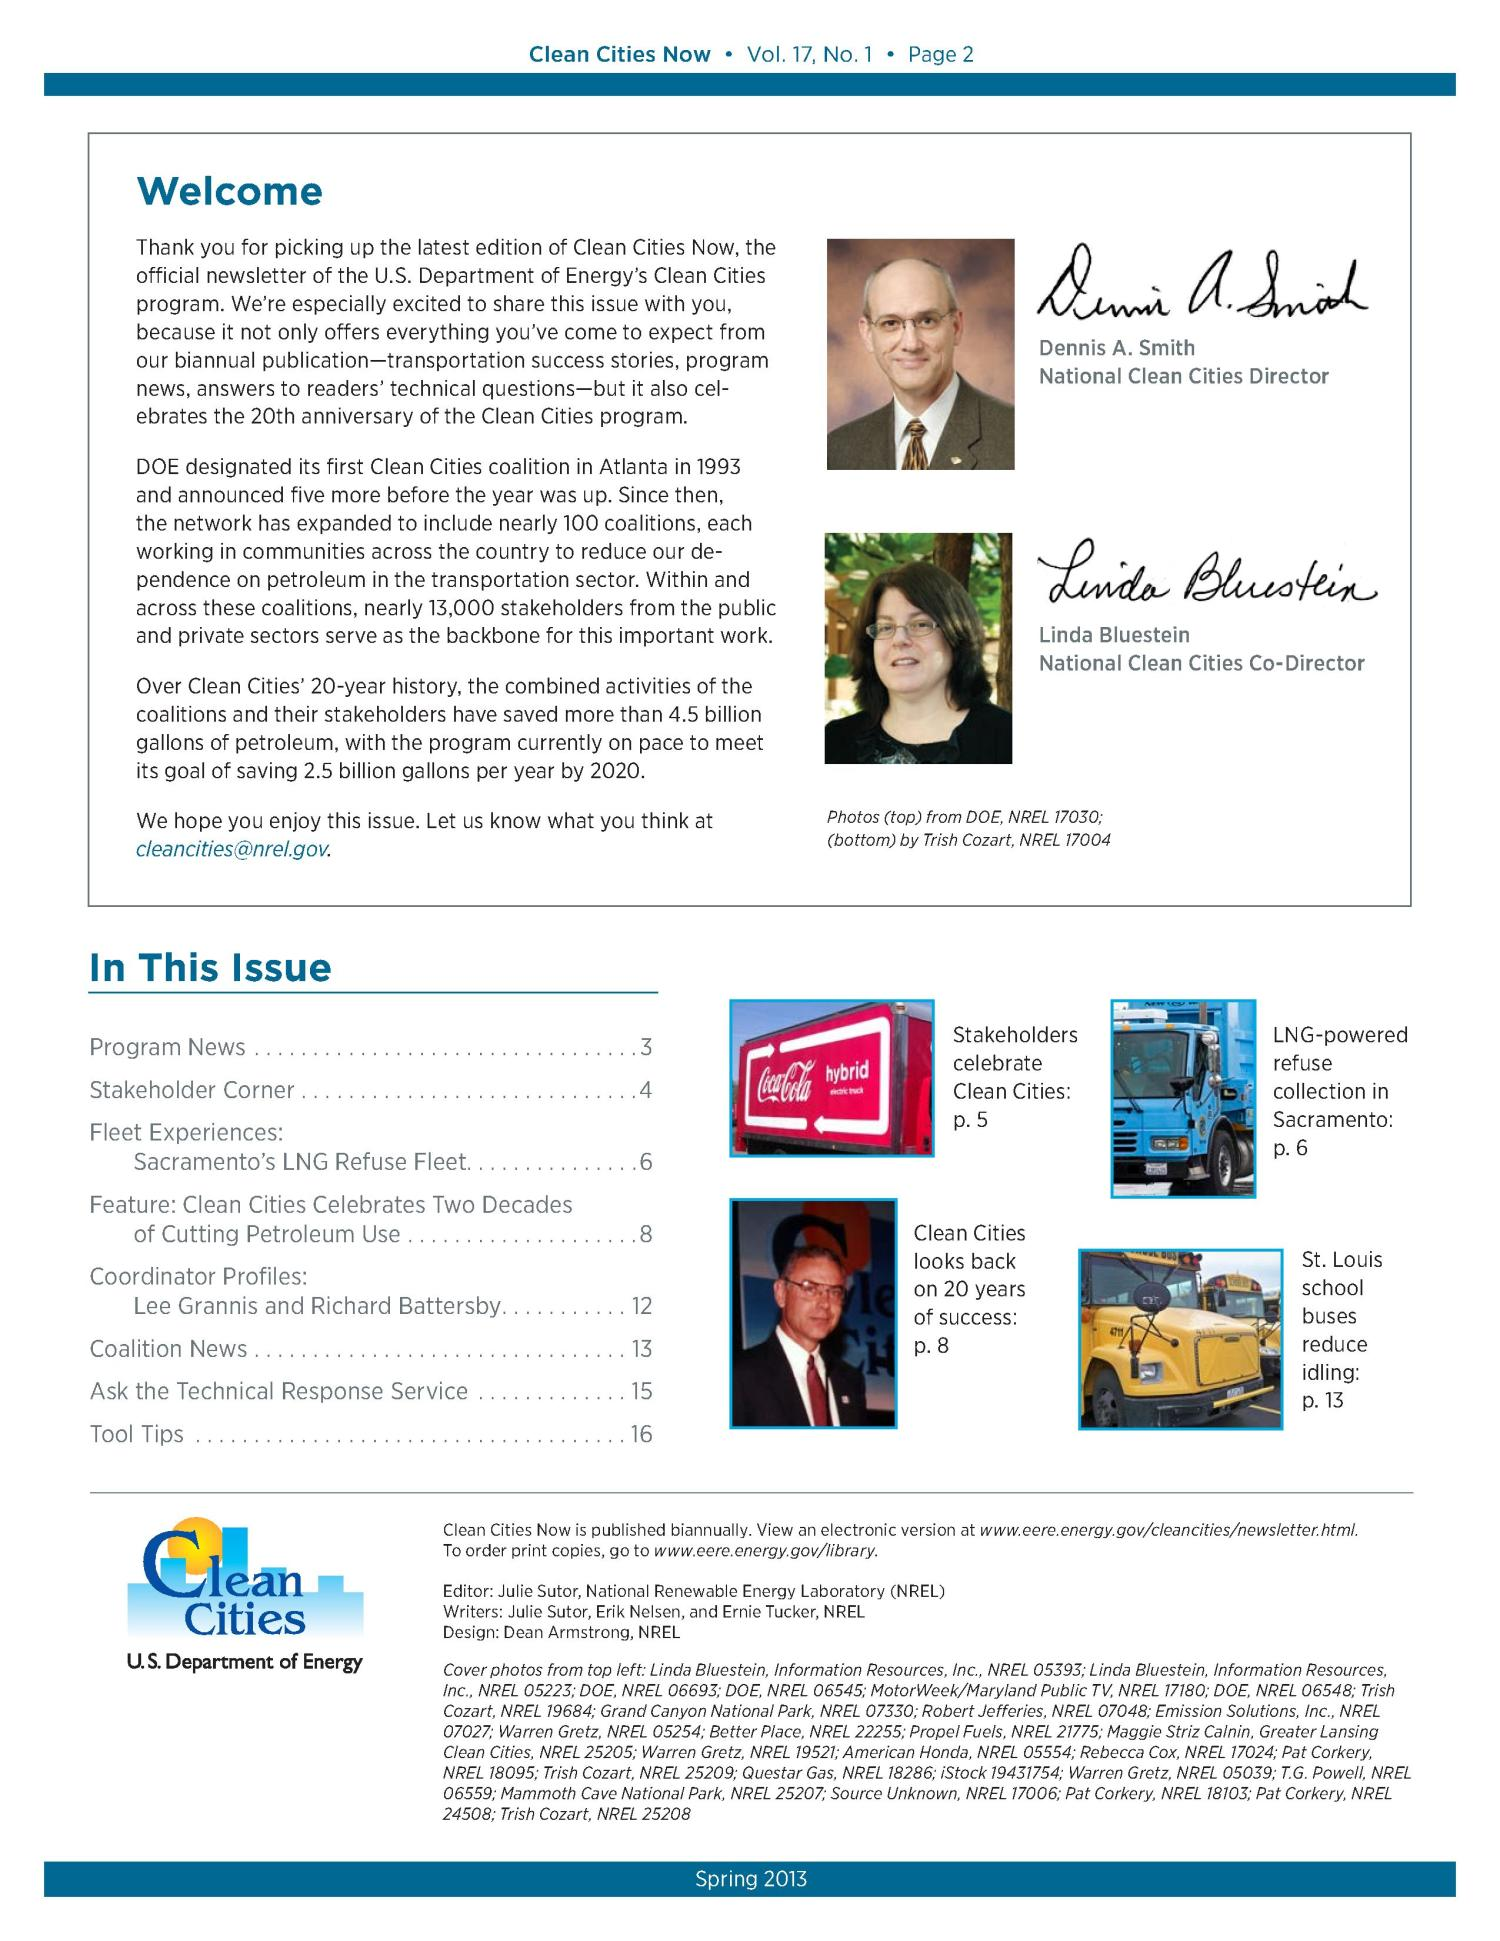 Clean Cities Now: Vol. 17, No. 1, Spring 2013 (Brochure)                                                                                                      [Sequence #]: 2 of 15